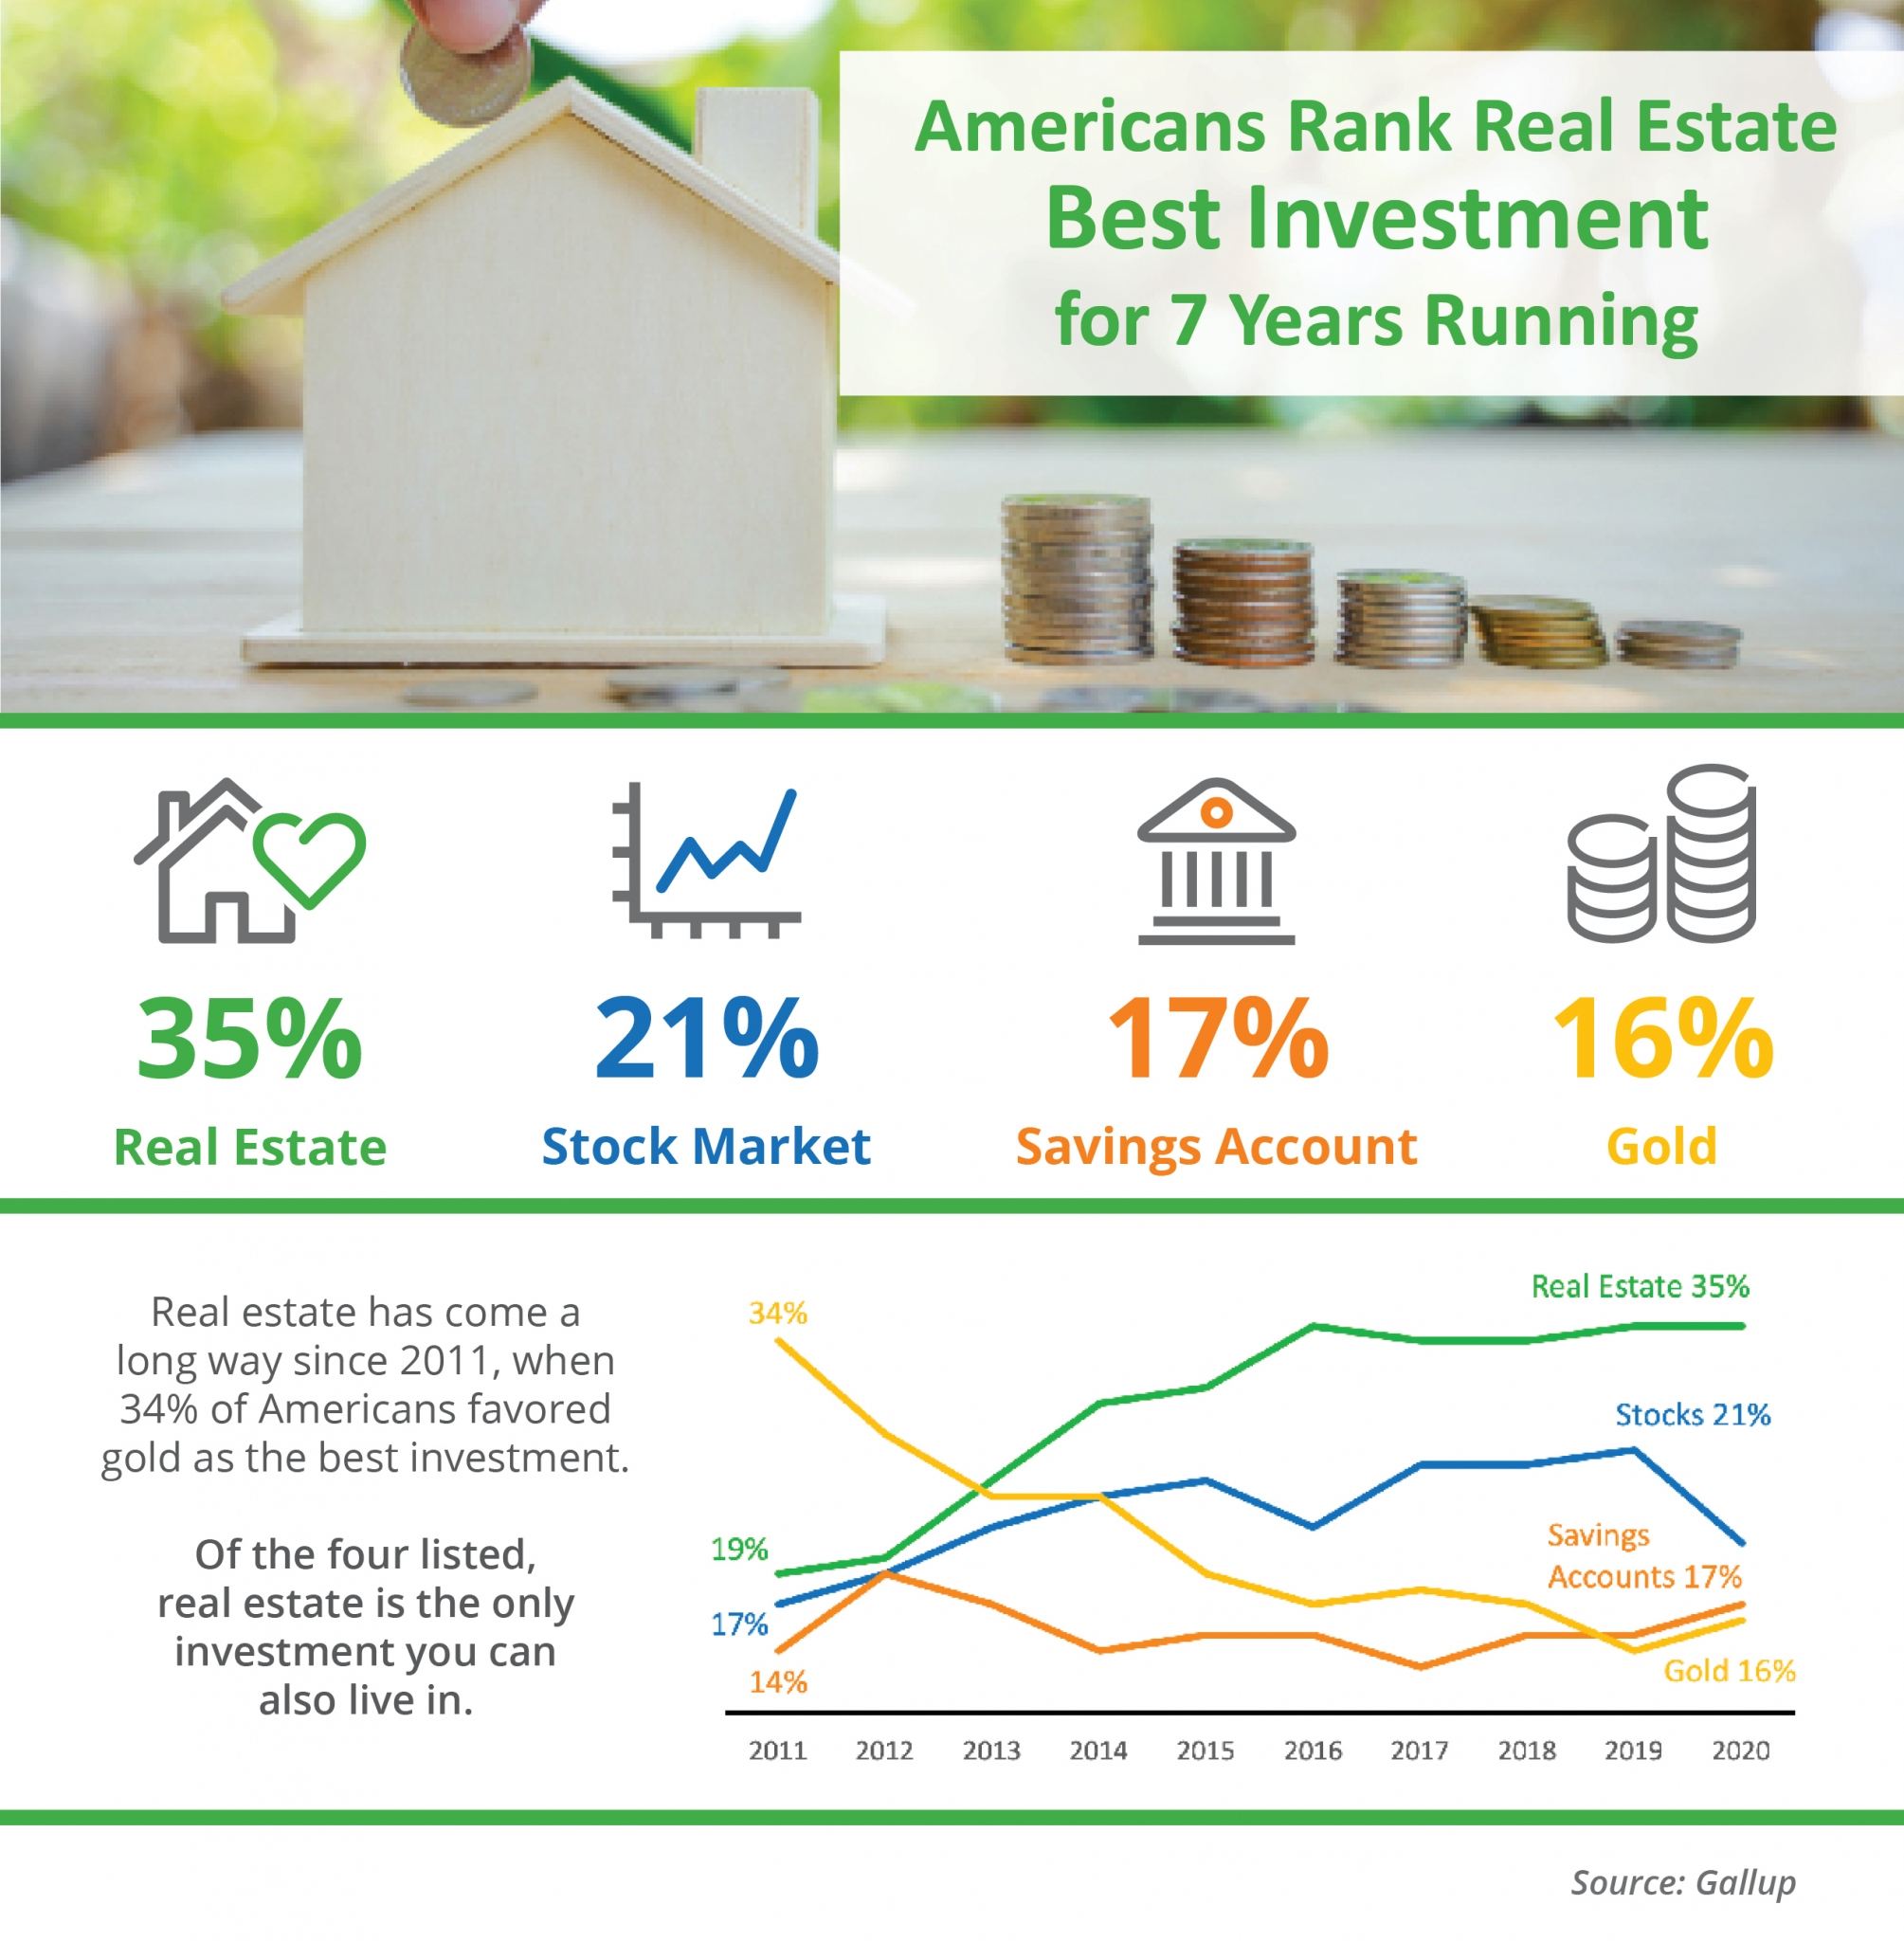 Americans Rank Real Estate Best Investment for 7 Years Running.jpg